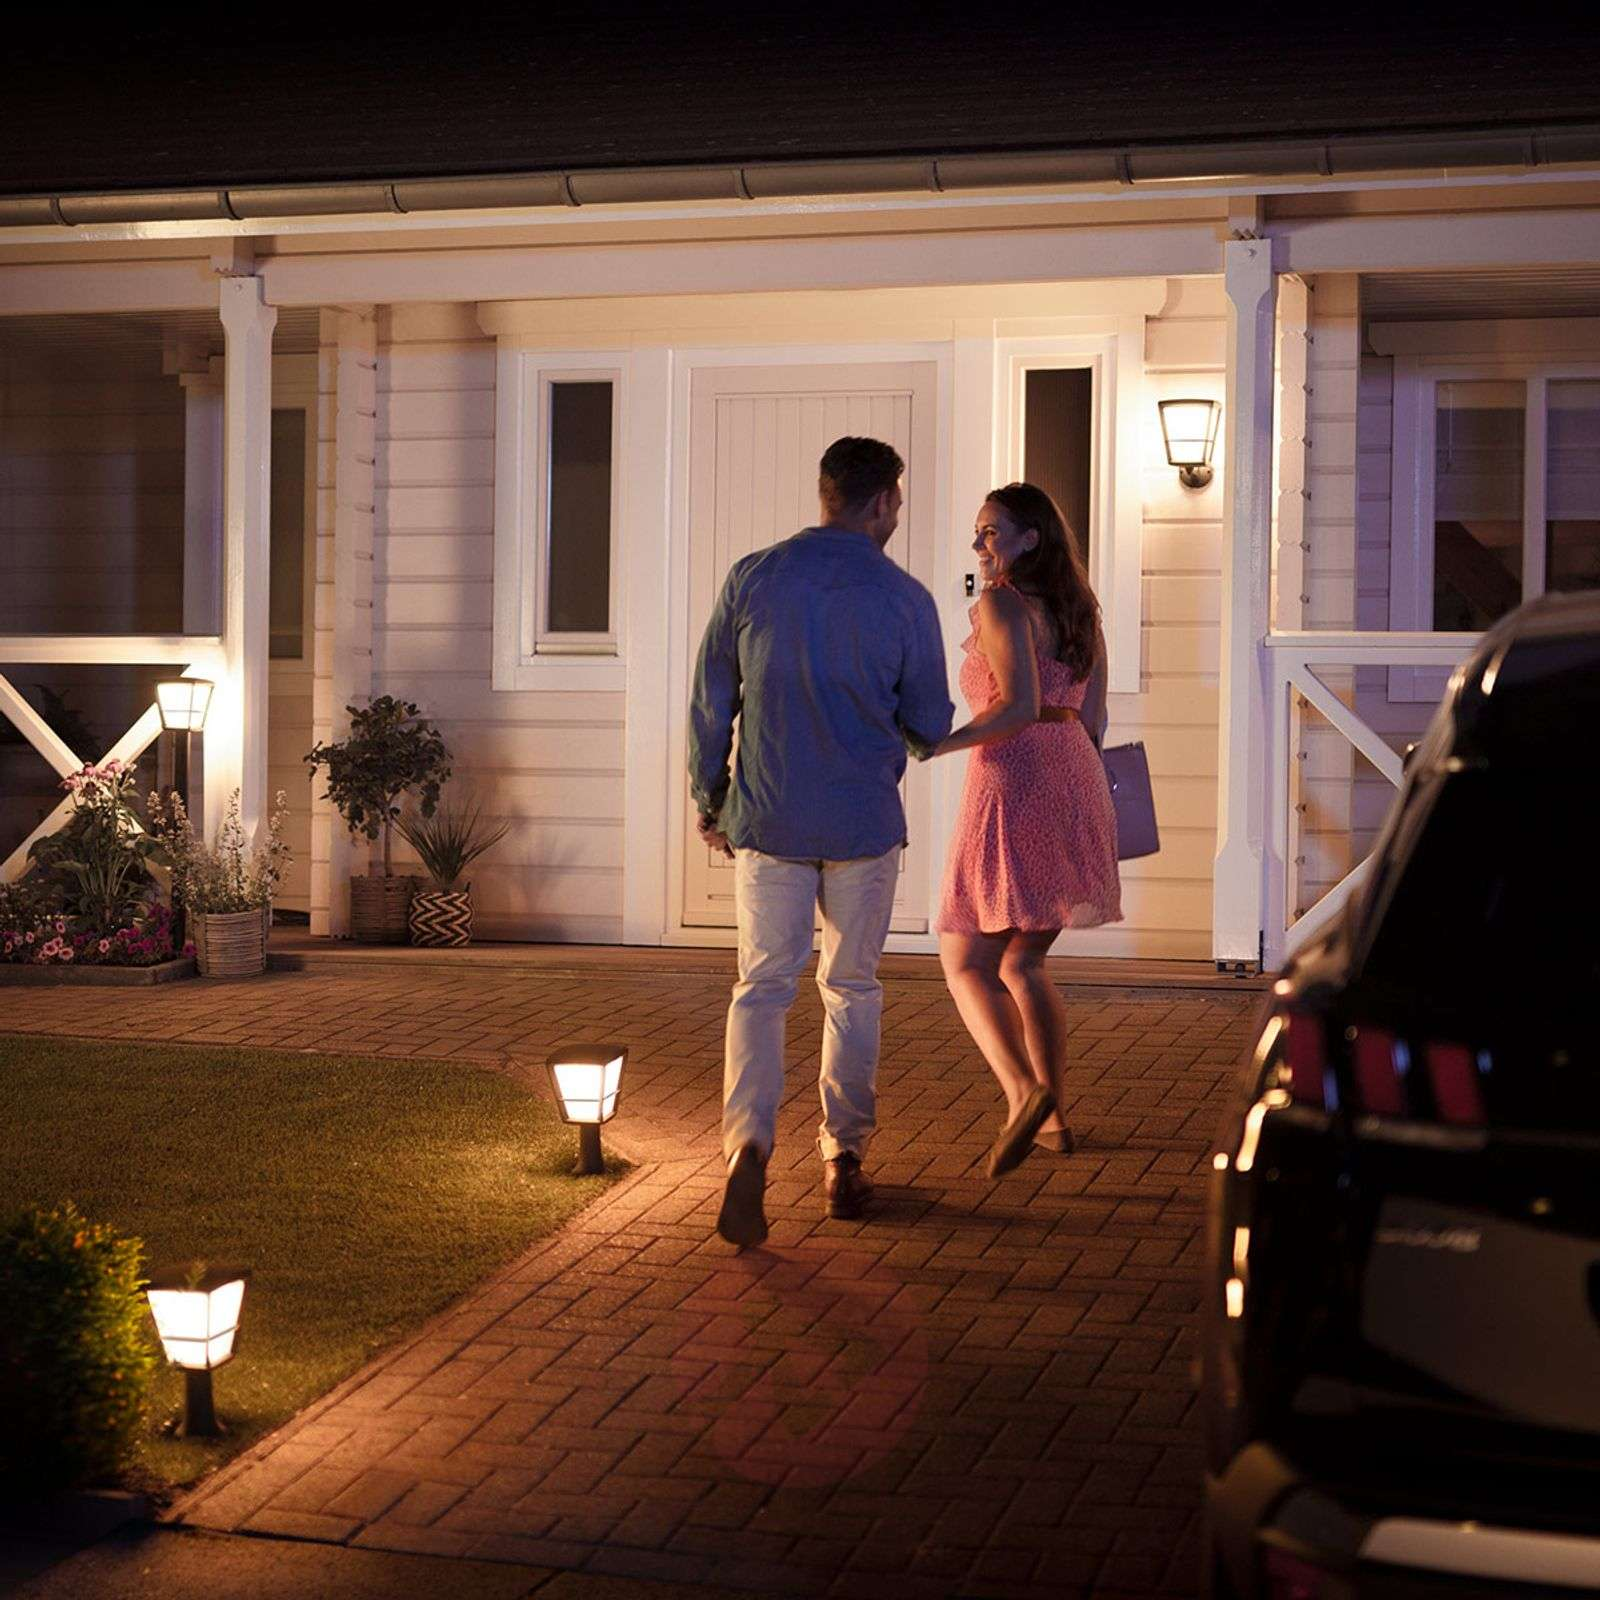 Philips Hue White+Color Econic wall light, above-7534117-02